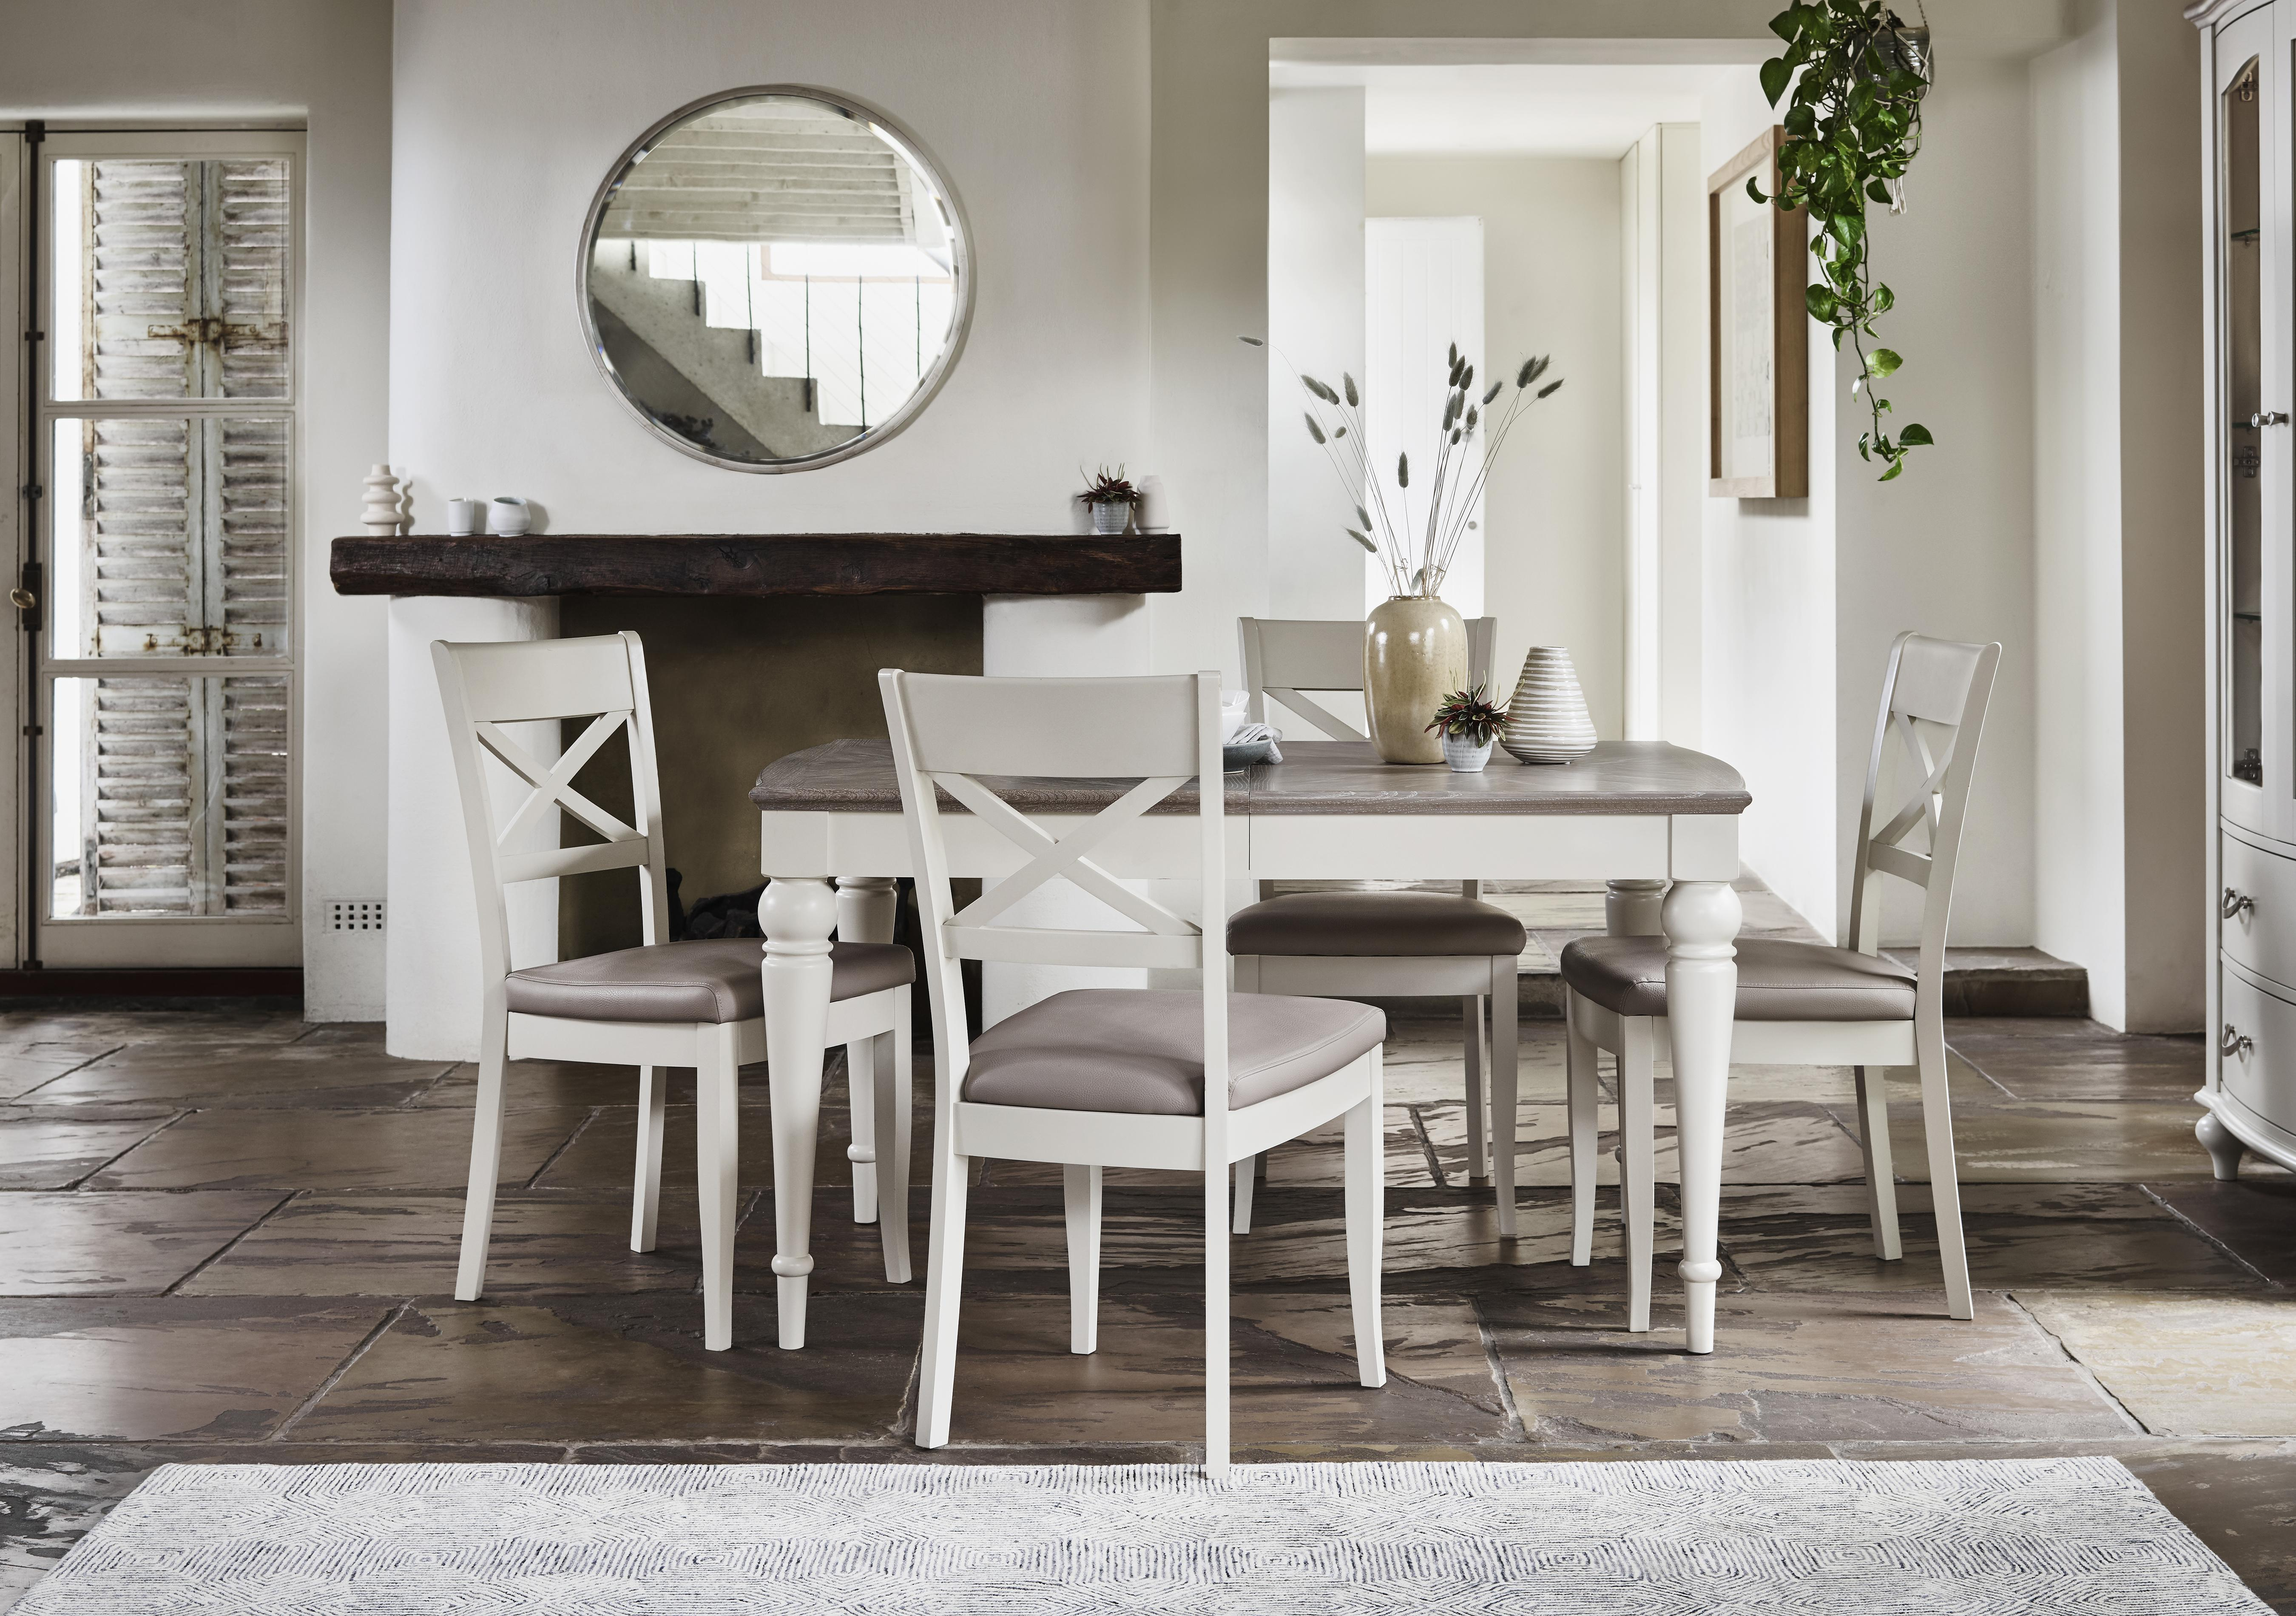 Annecy Extending Dining Table and 4 Faux Leather Cross Back Chairs in on Furniture Village & Oak dining tables u0026 chairs - Furniture Village